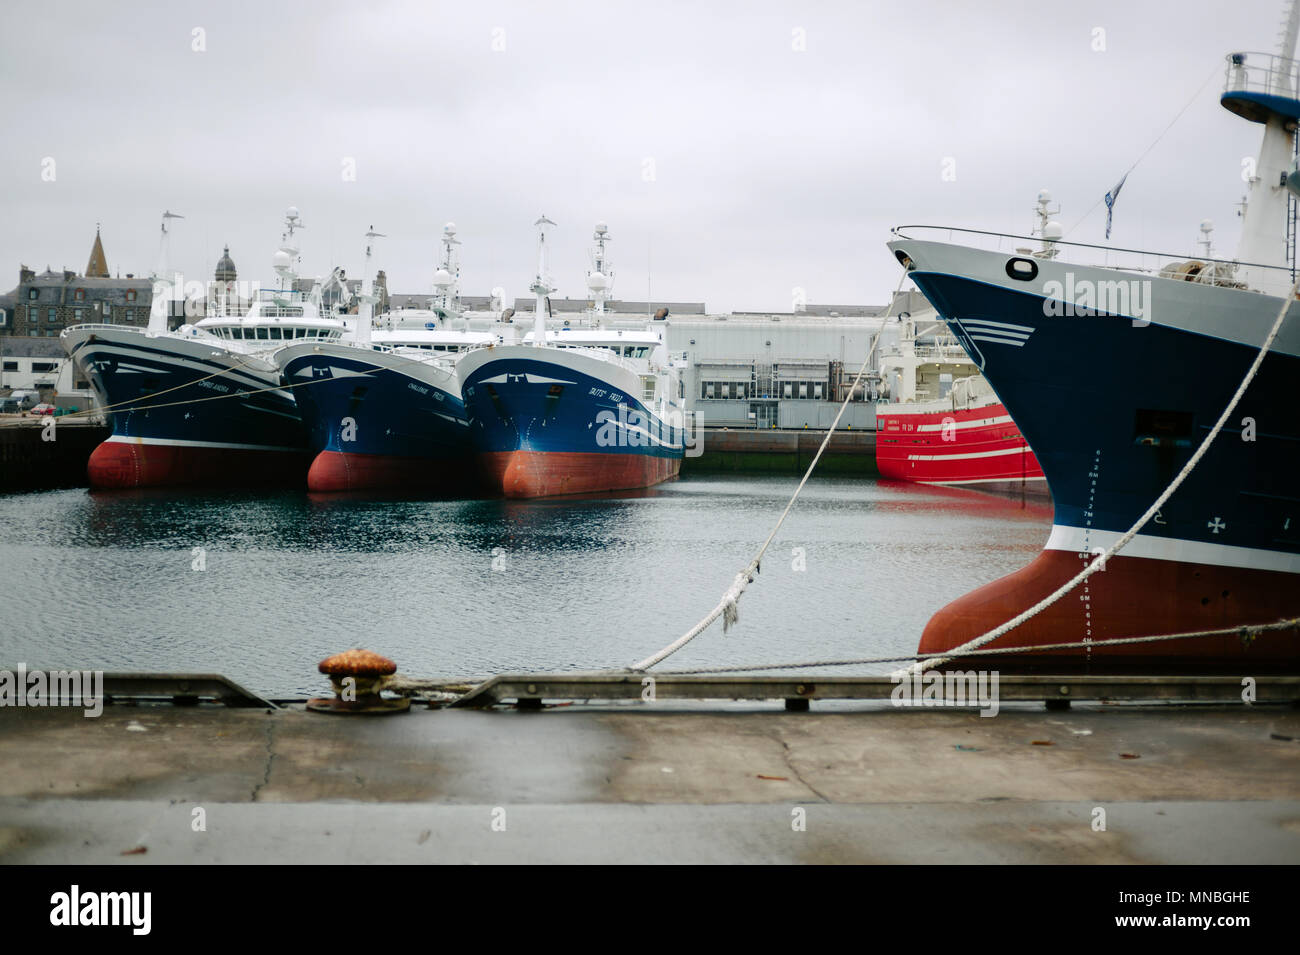 Pelagic Trawlers in Peterhead Harbour. - Stock Image